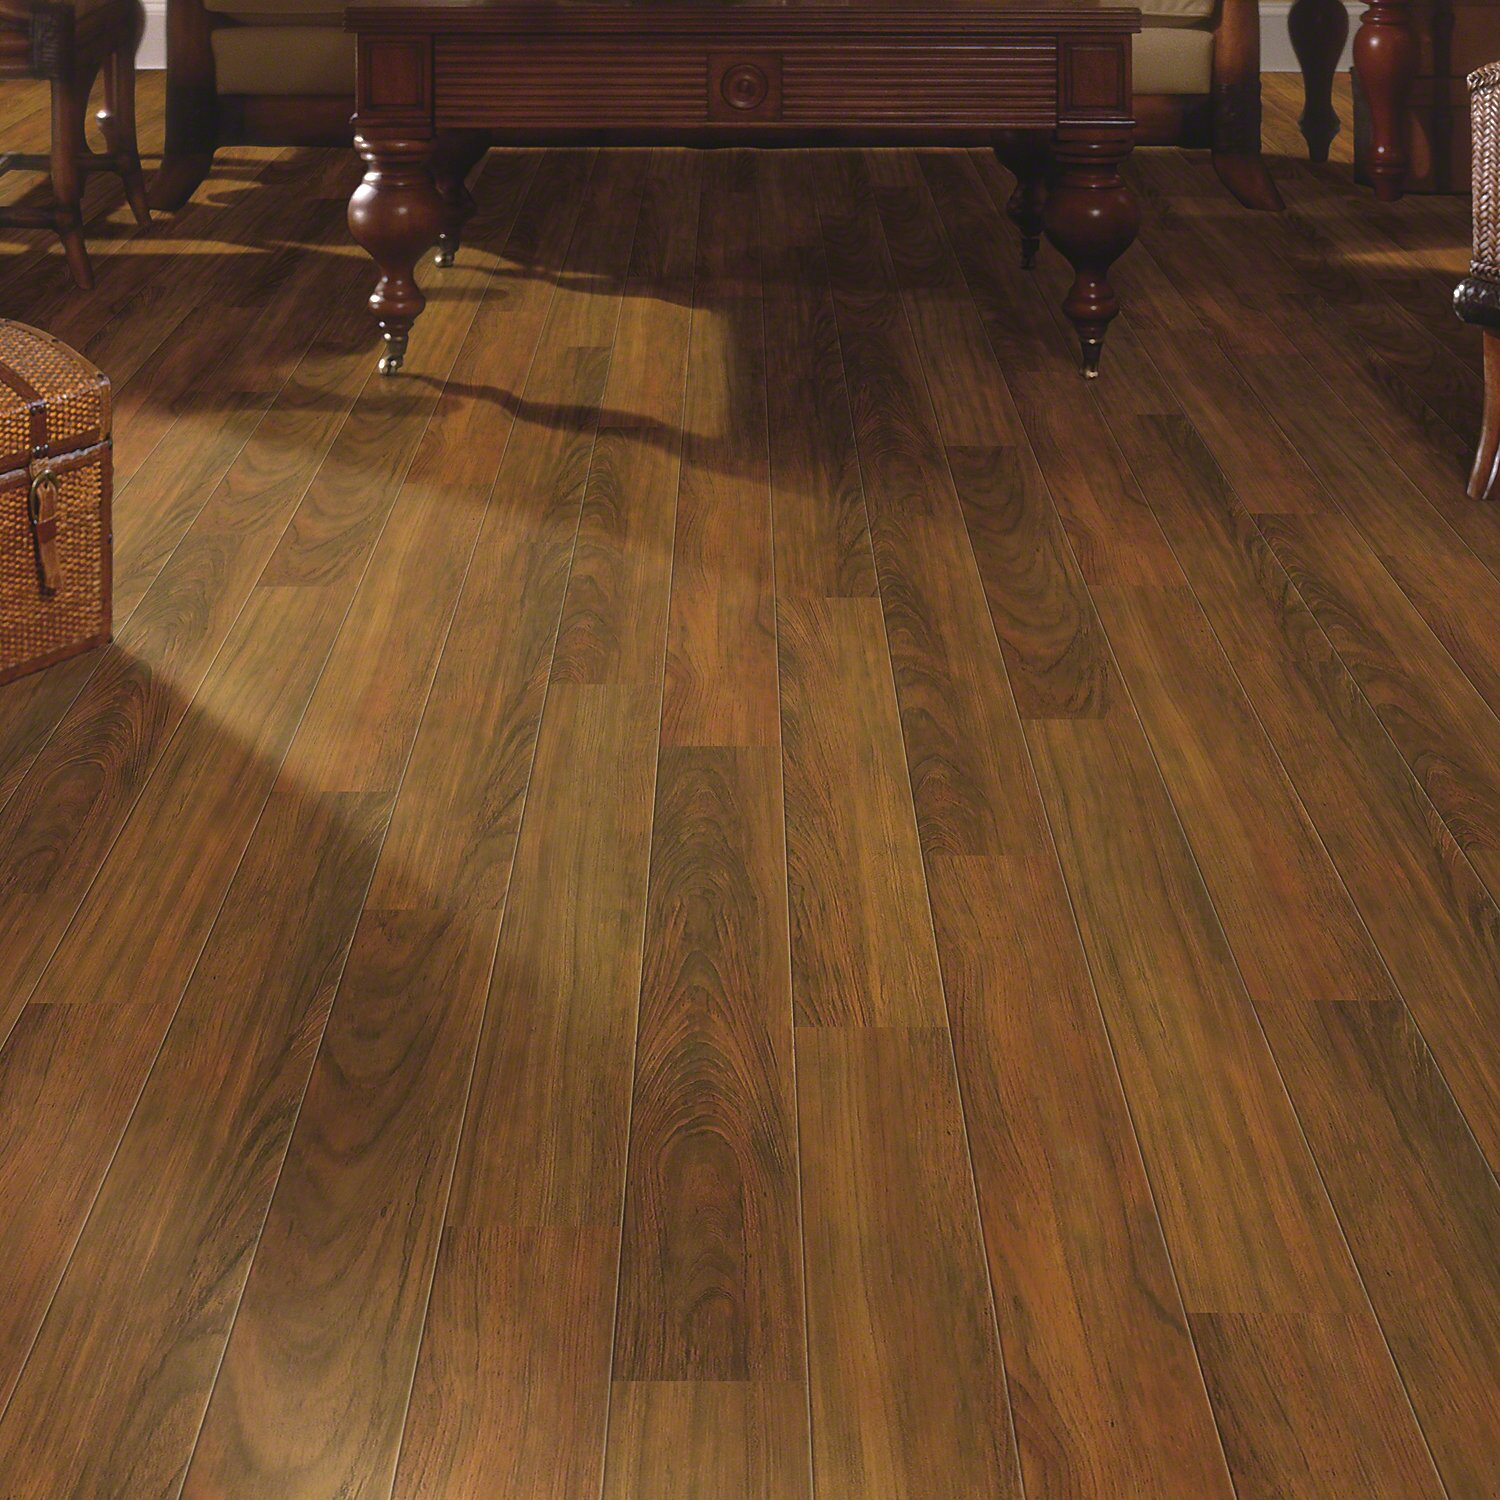 Cherry Laminate Flooring cherry laminate flooring Samara 5 X 48 X 8mm Cherry Laminate